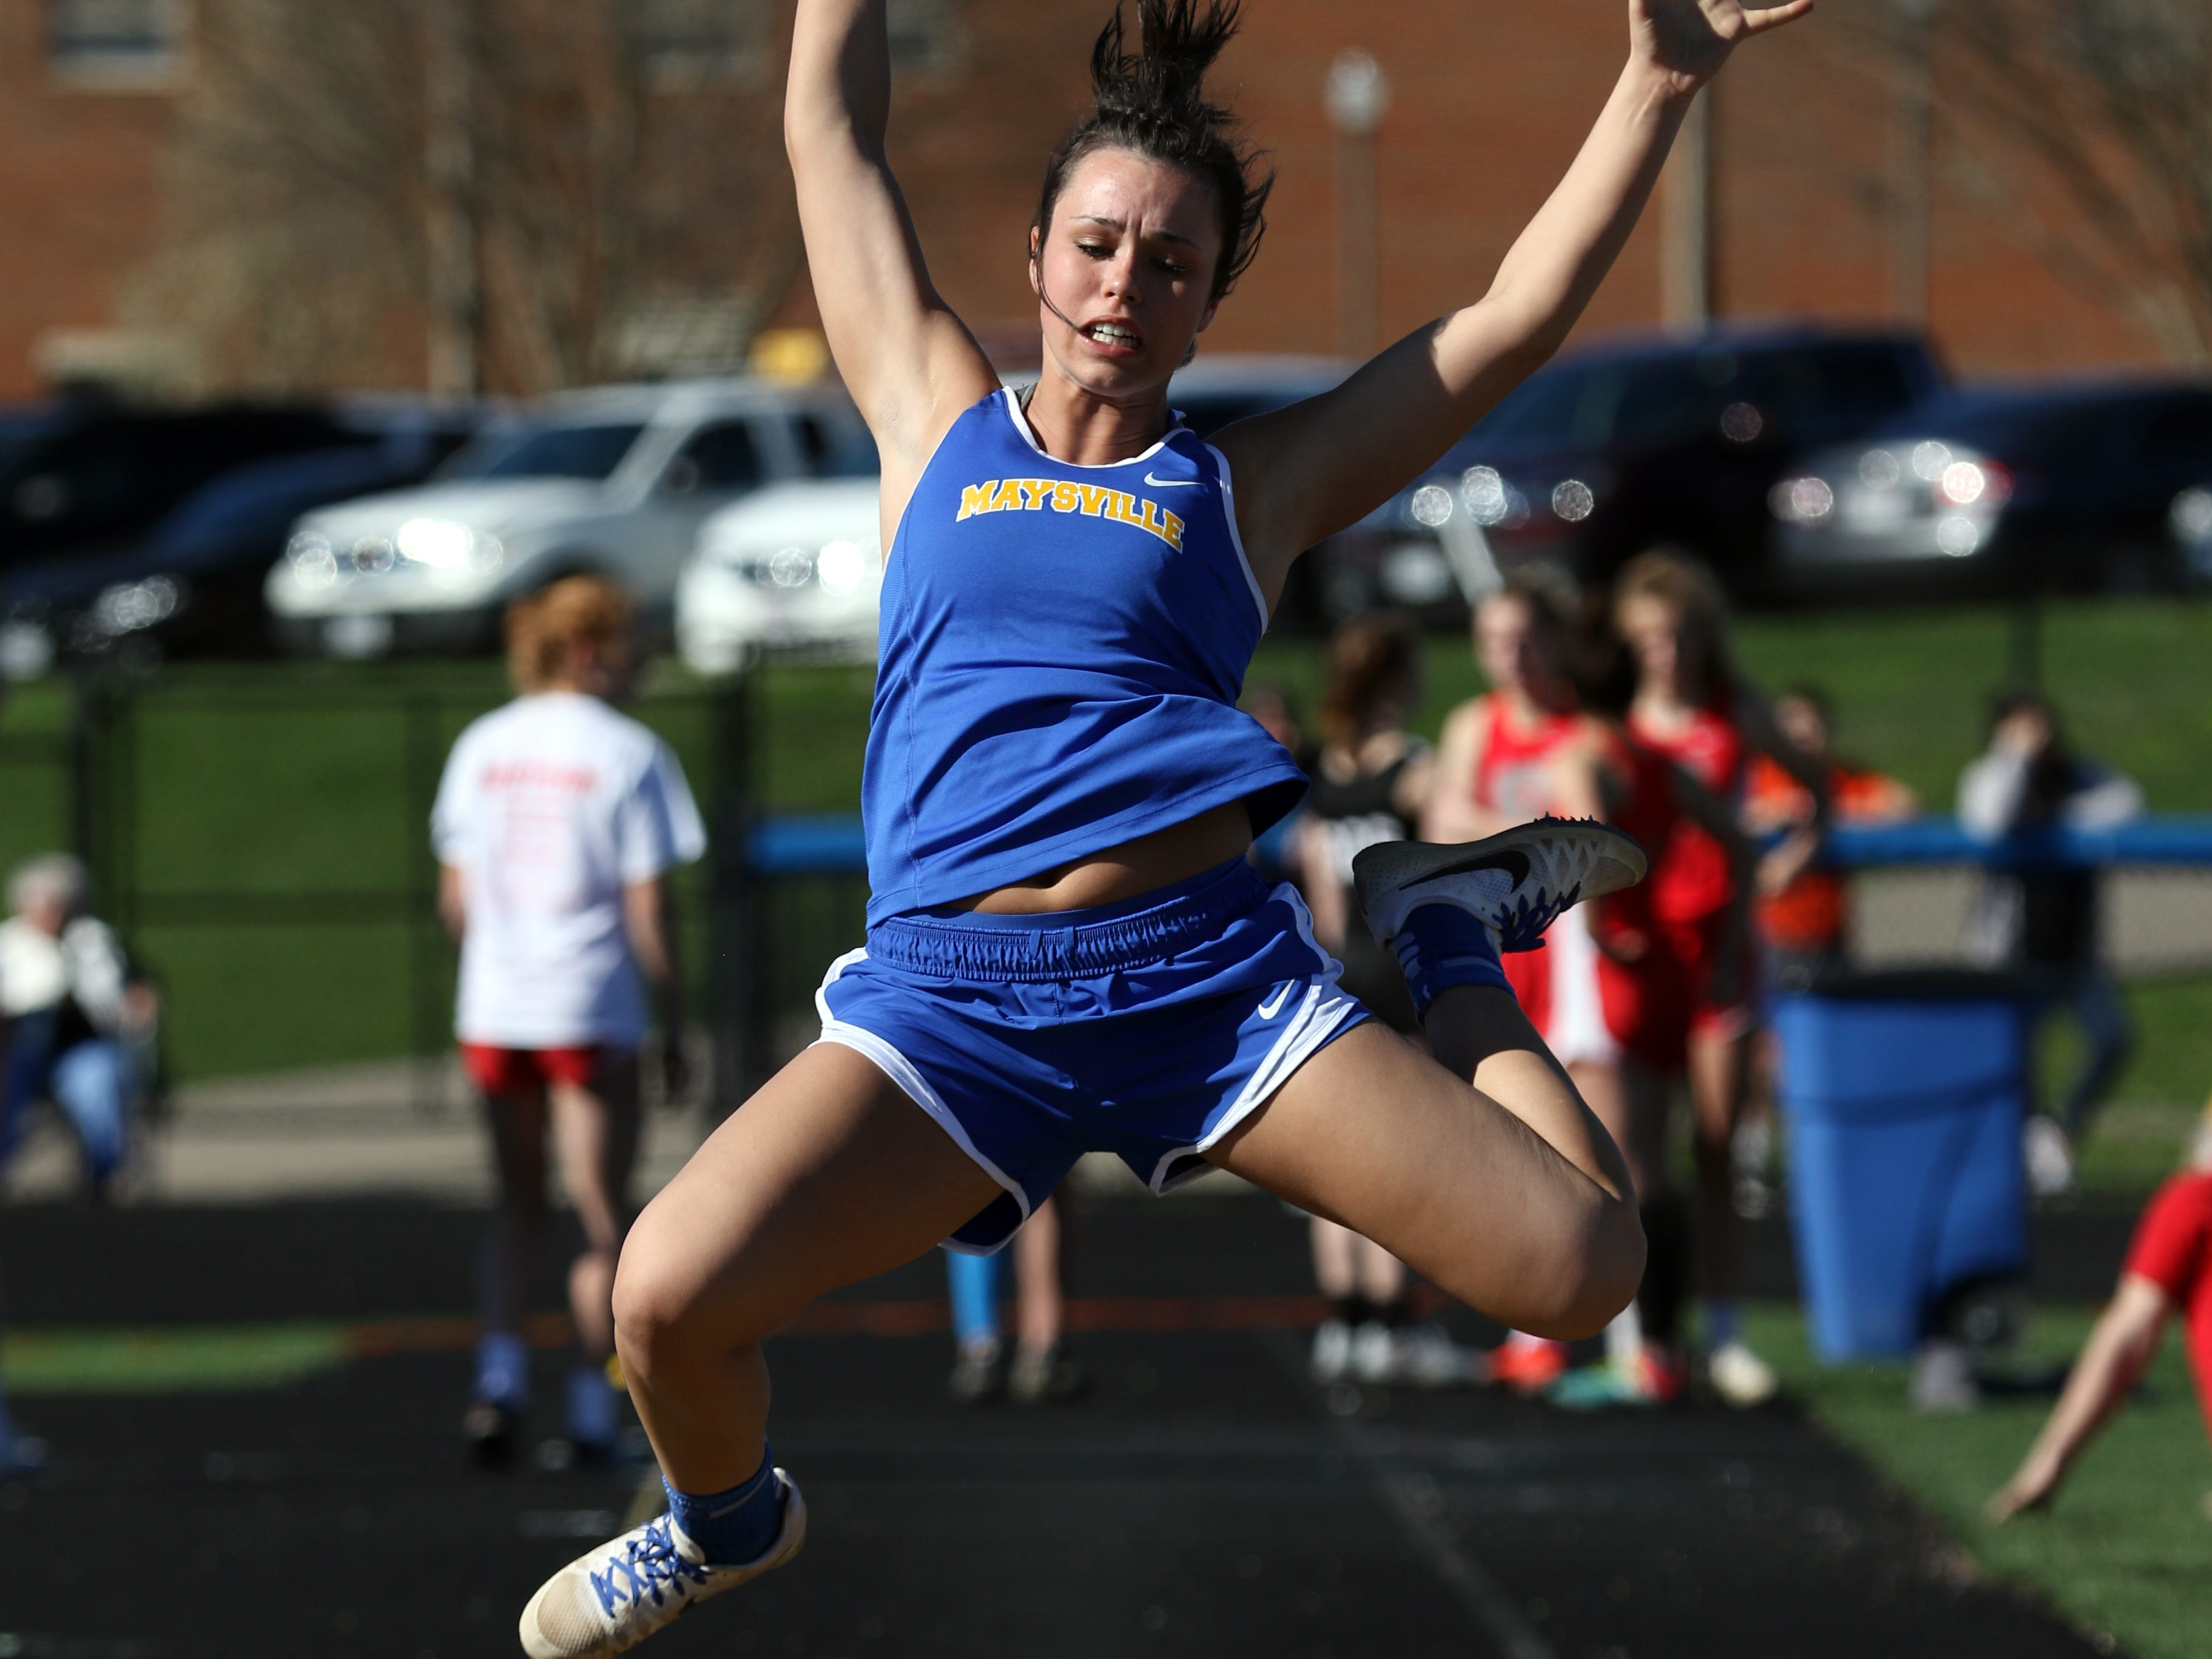 A Maysville jumper competes in the long jump during Tuesday's tri-meet between Sheridan, New Lexington and host Maysville.